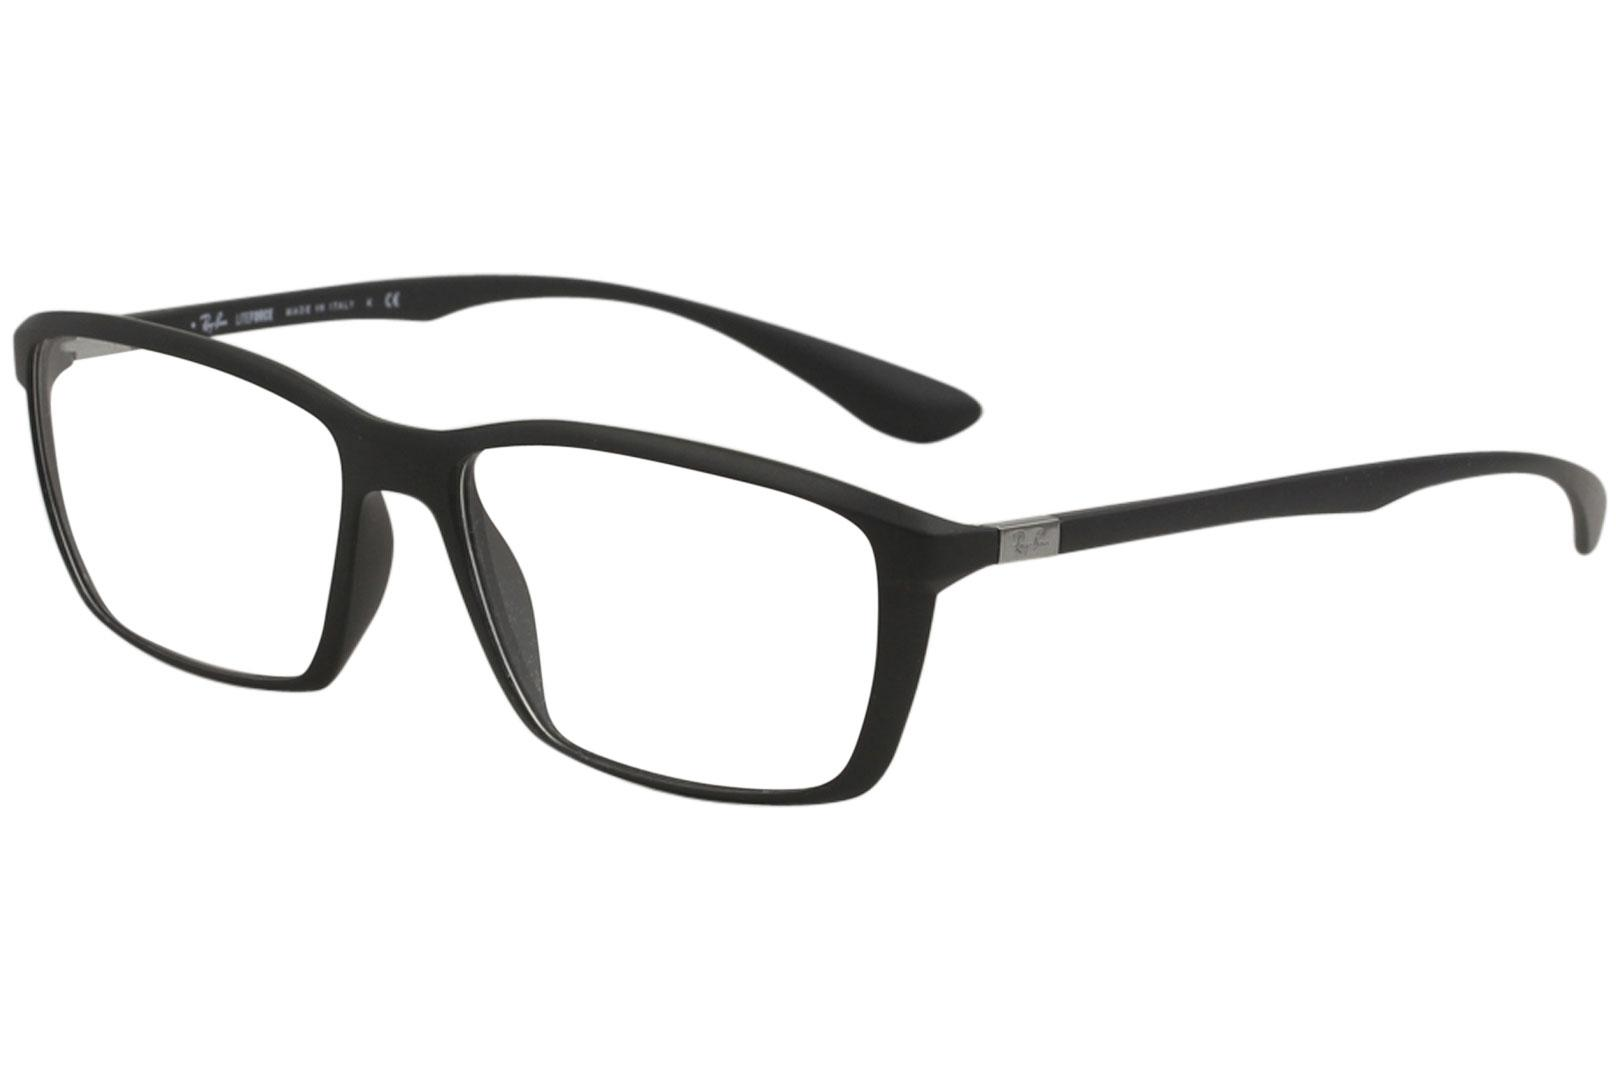 847175a401 ... shopping ray ban mens liteforce eyeglasses rx7018 rx 7018 rayban full  rim optical frame by ray